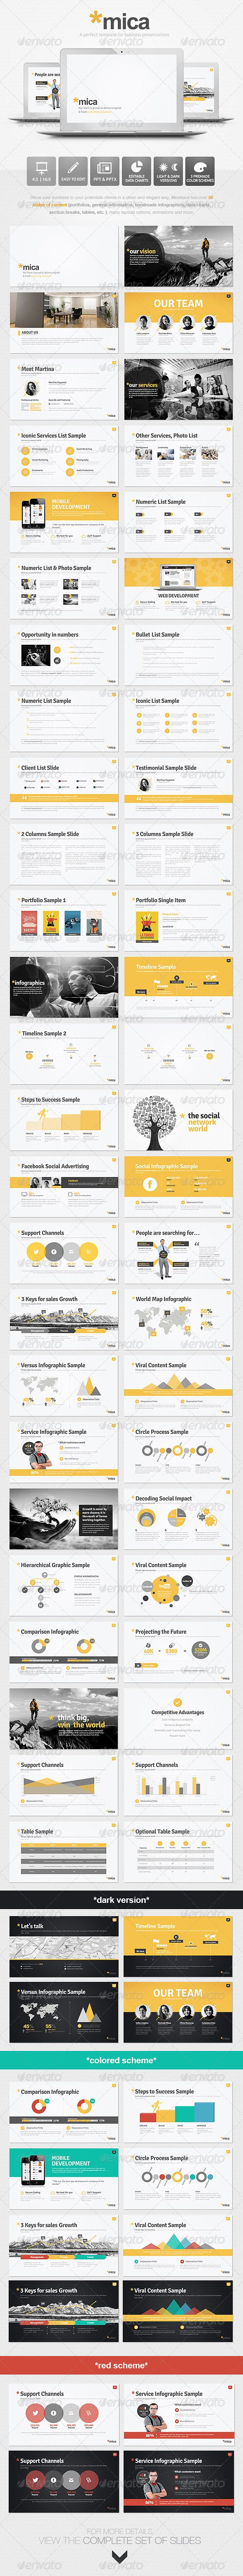 Mica Powerpoint Presentation Template - Powerpoint Templates Presentation Templates